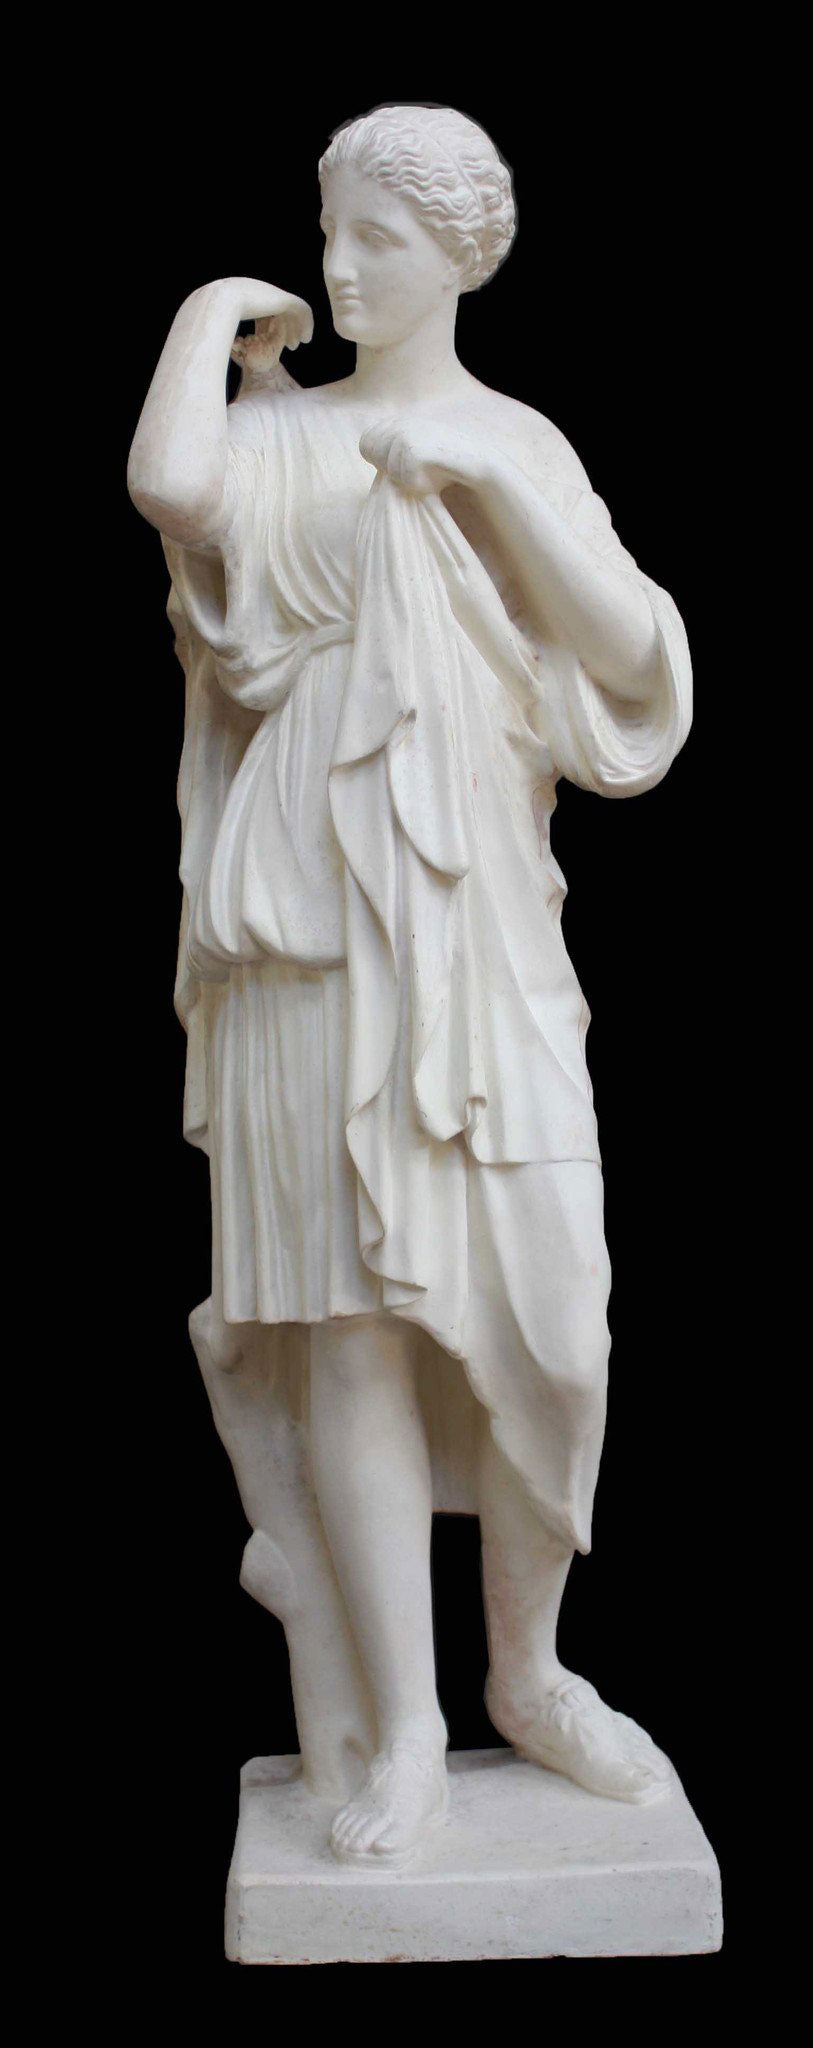 photo with black background of plaster cast of female figure, namely the goddess Diana, with robes about to clasp two pieces together at proper right shoulder